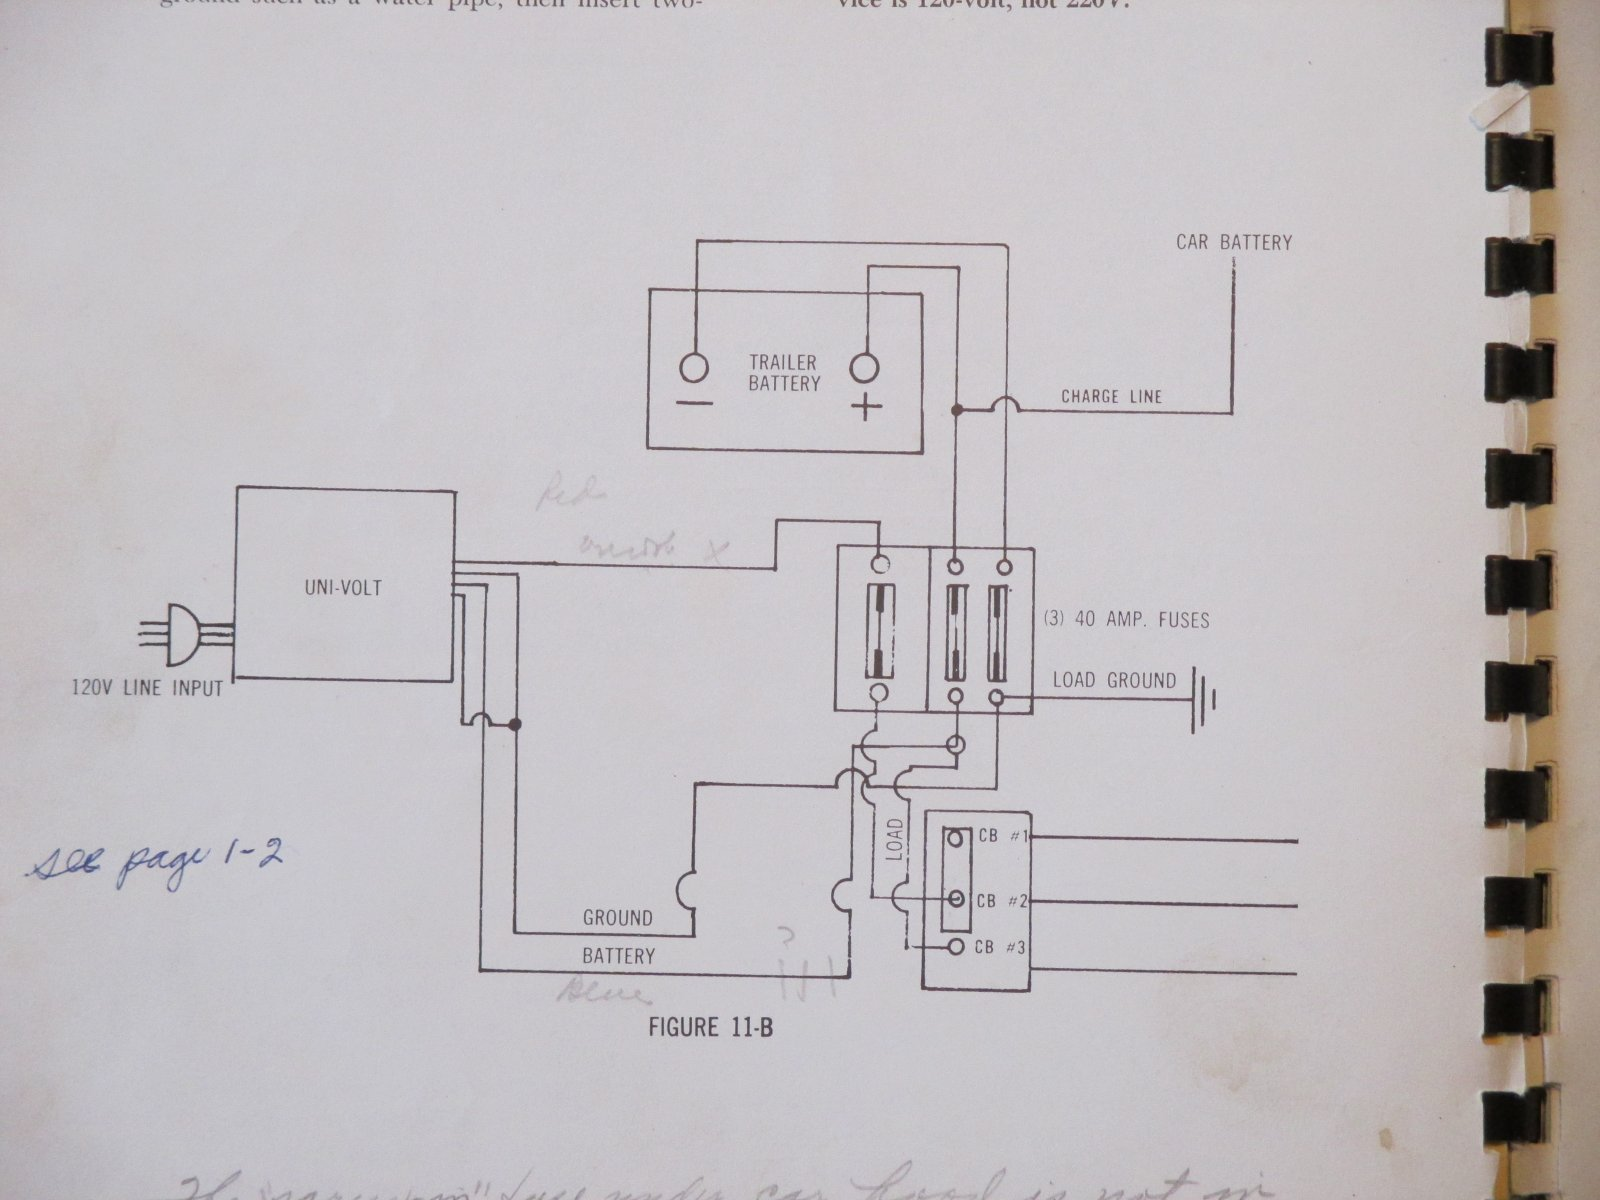 3240 converter wiring diagram 3240 discover your wiring diagram why two fuse panels airstream forums rv battery converter charger wiring diagram